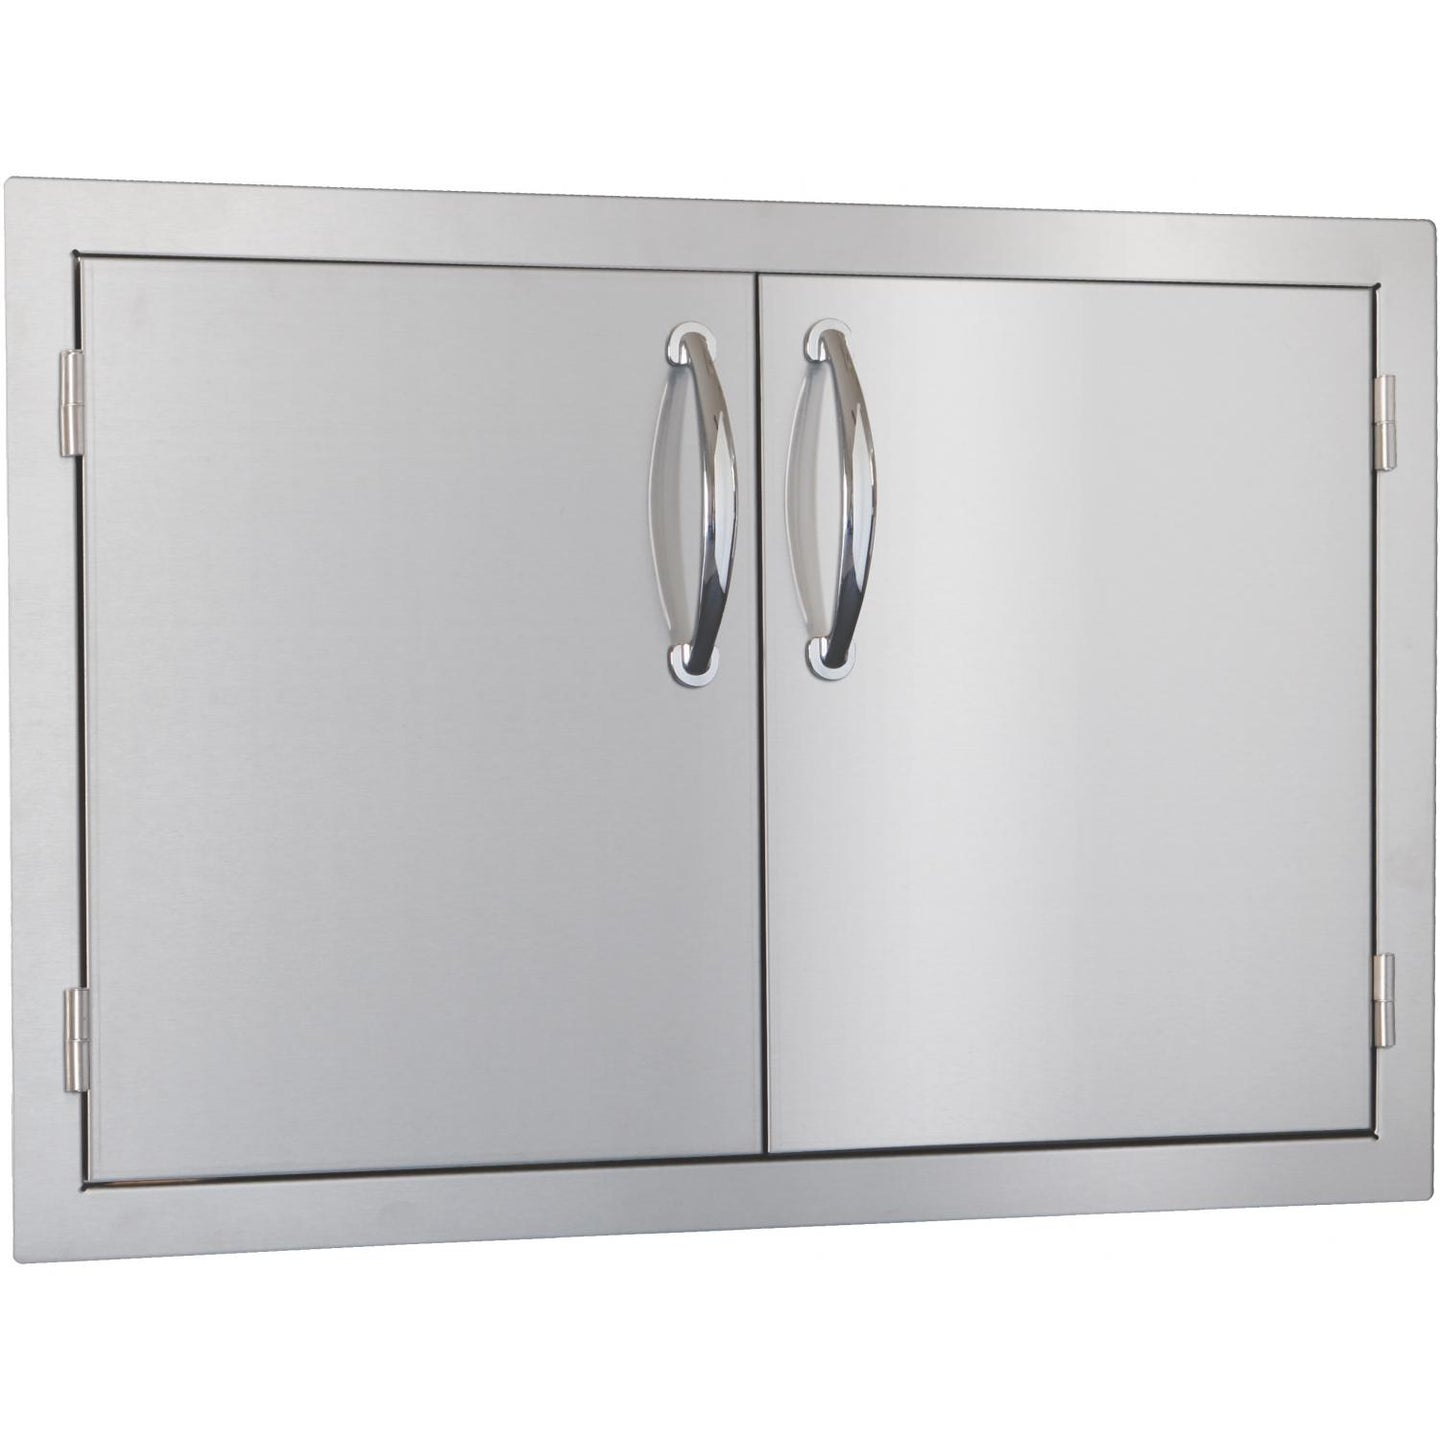 Summerset 30-Inch Stainless Steel Flush Mount Double Access Door - SSDD-30